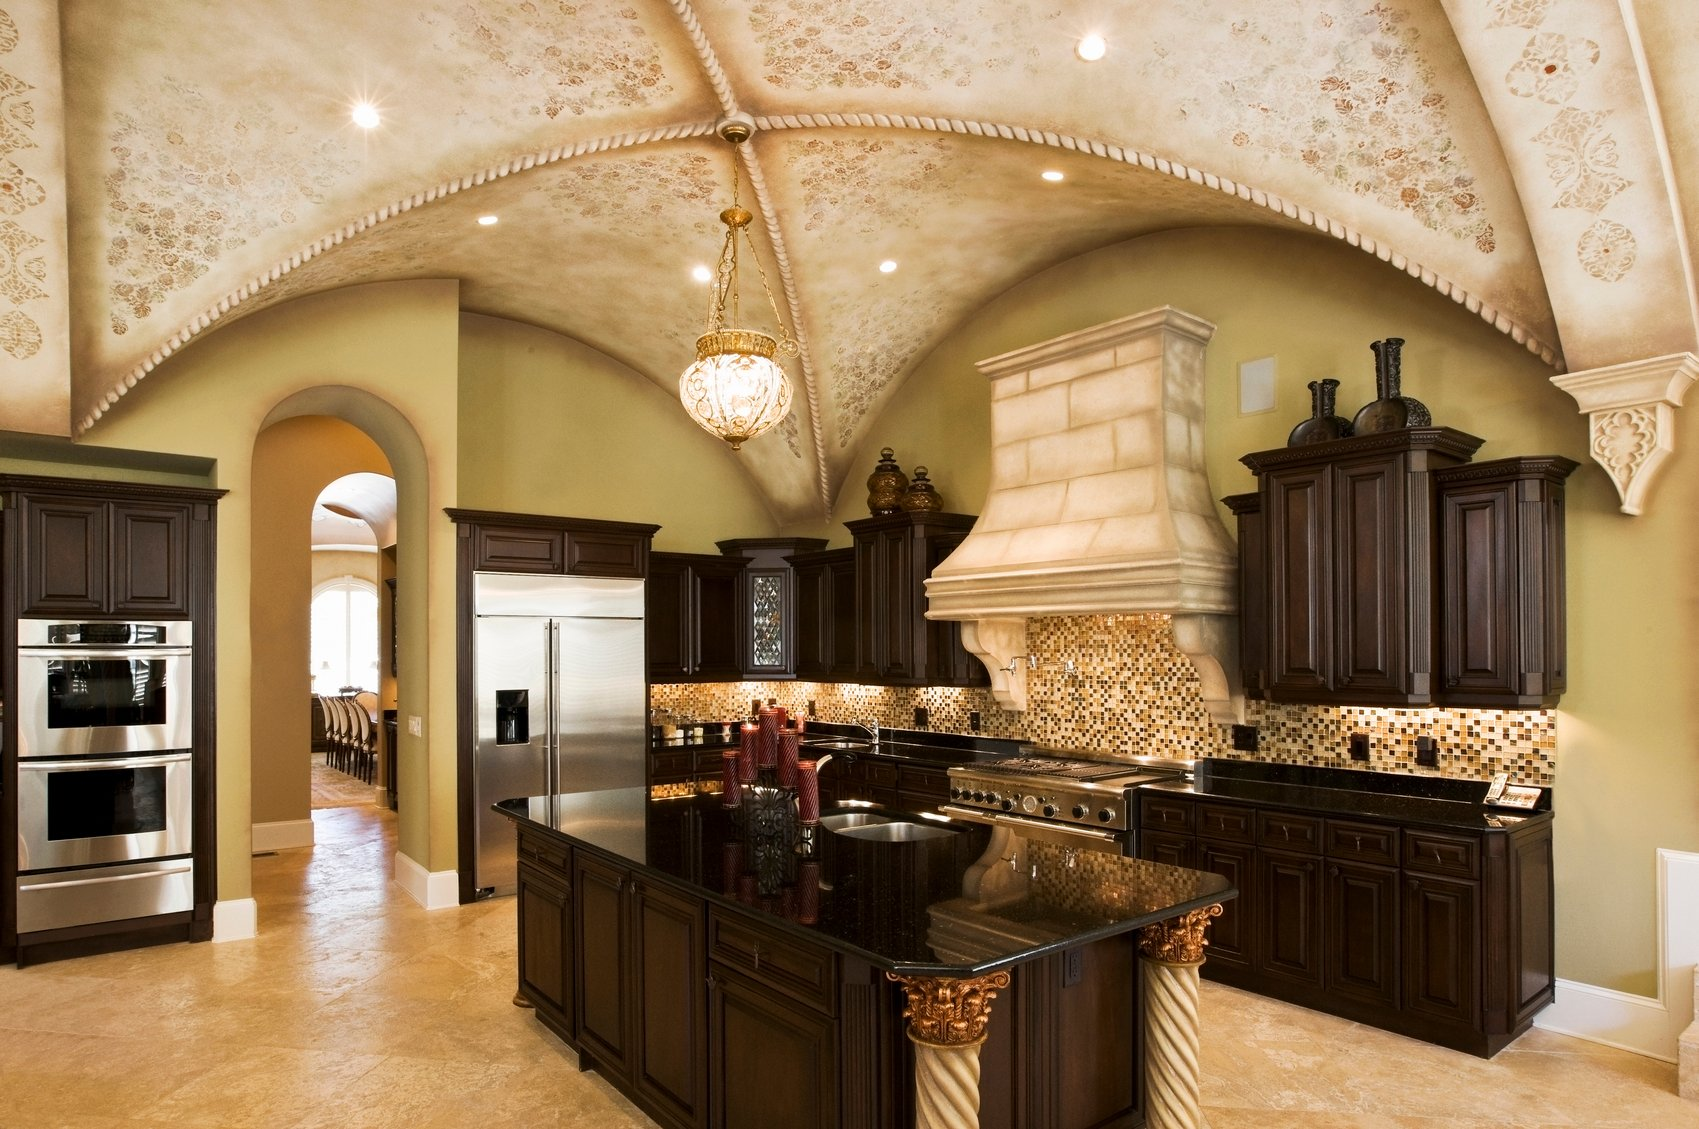 Marked with artistry and skill, this kitchen is definitely beautiful because of its ceiling.